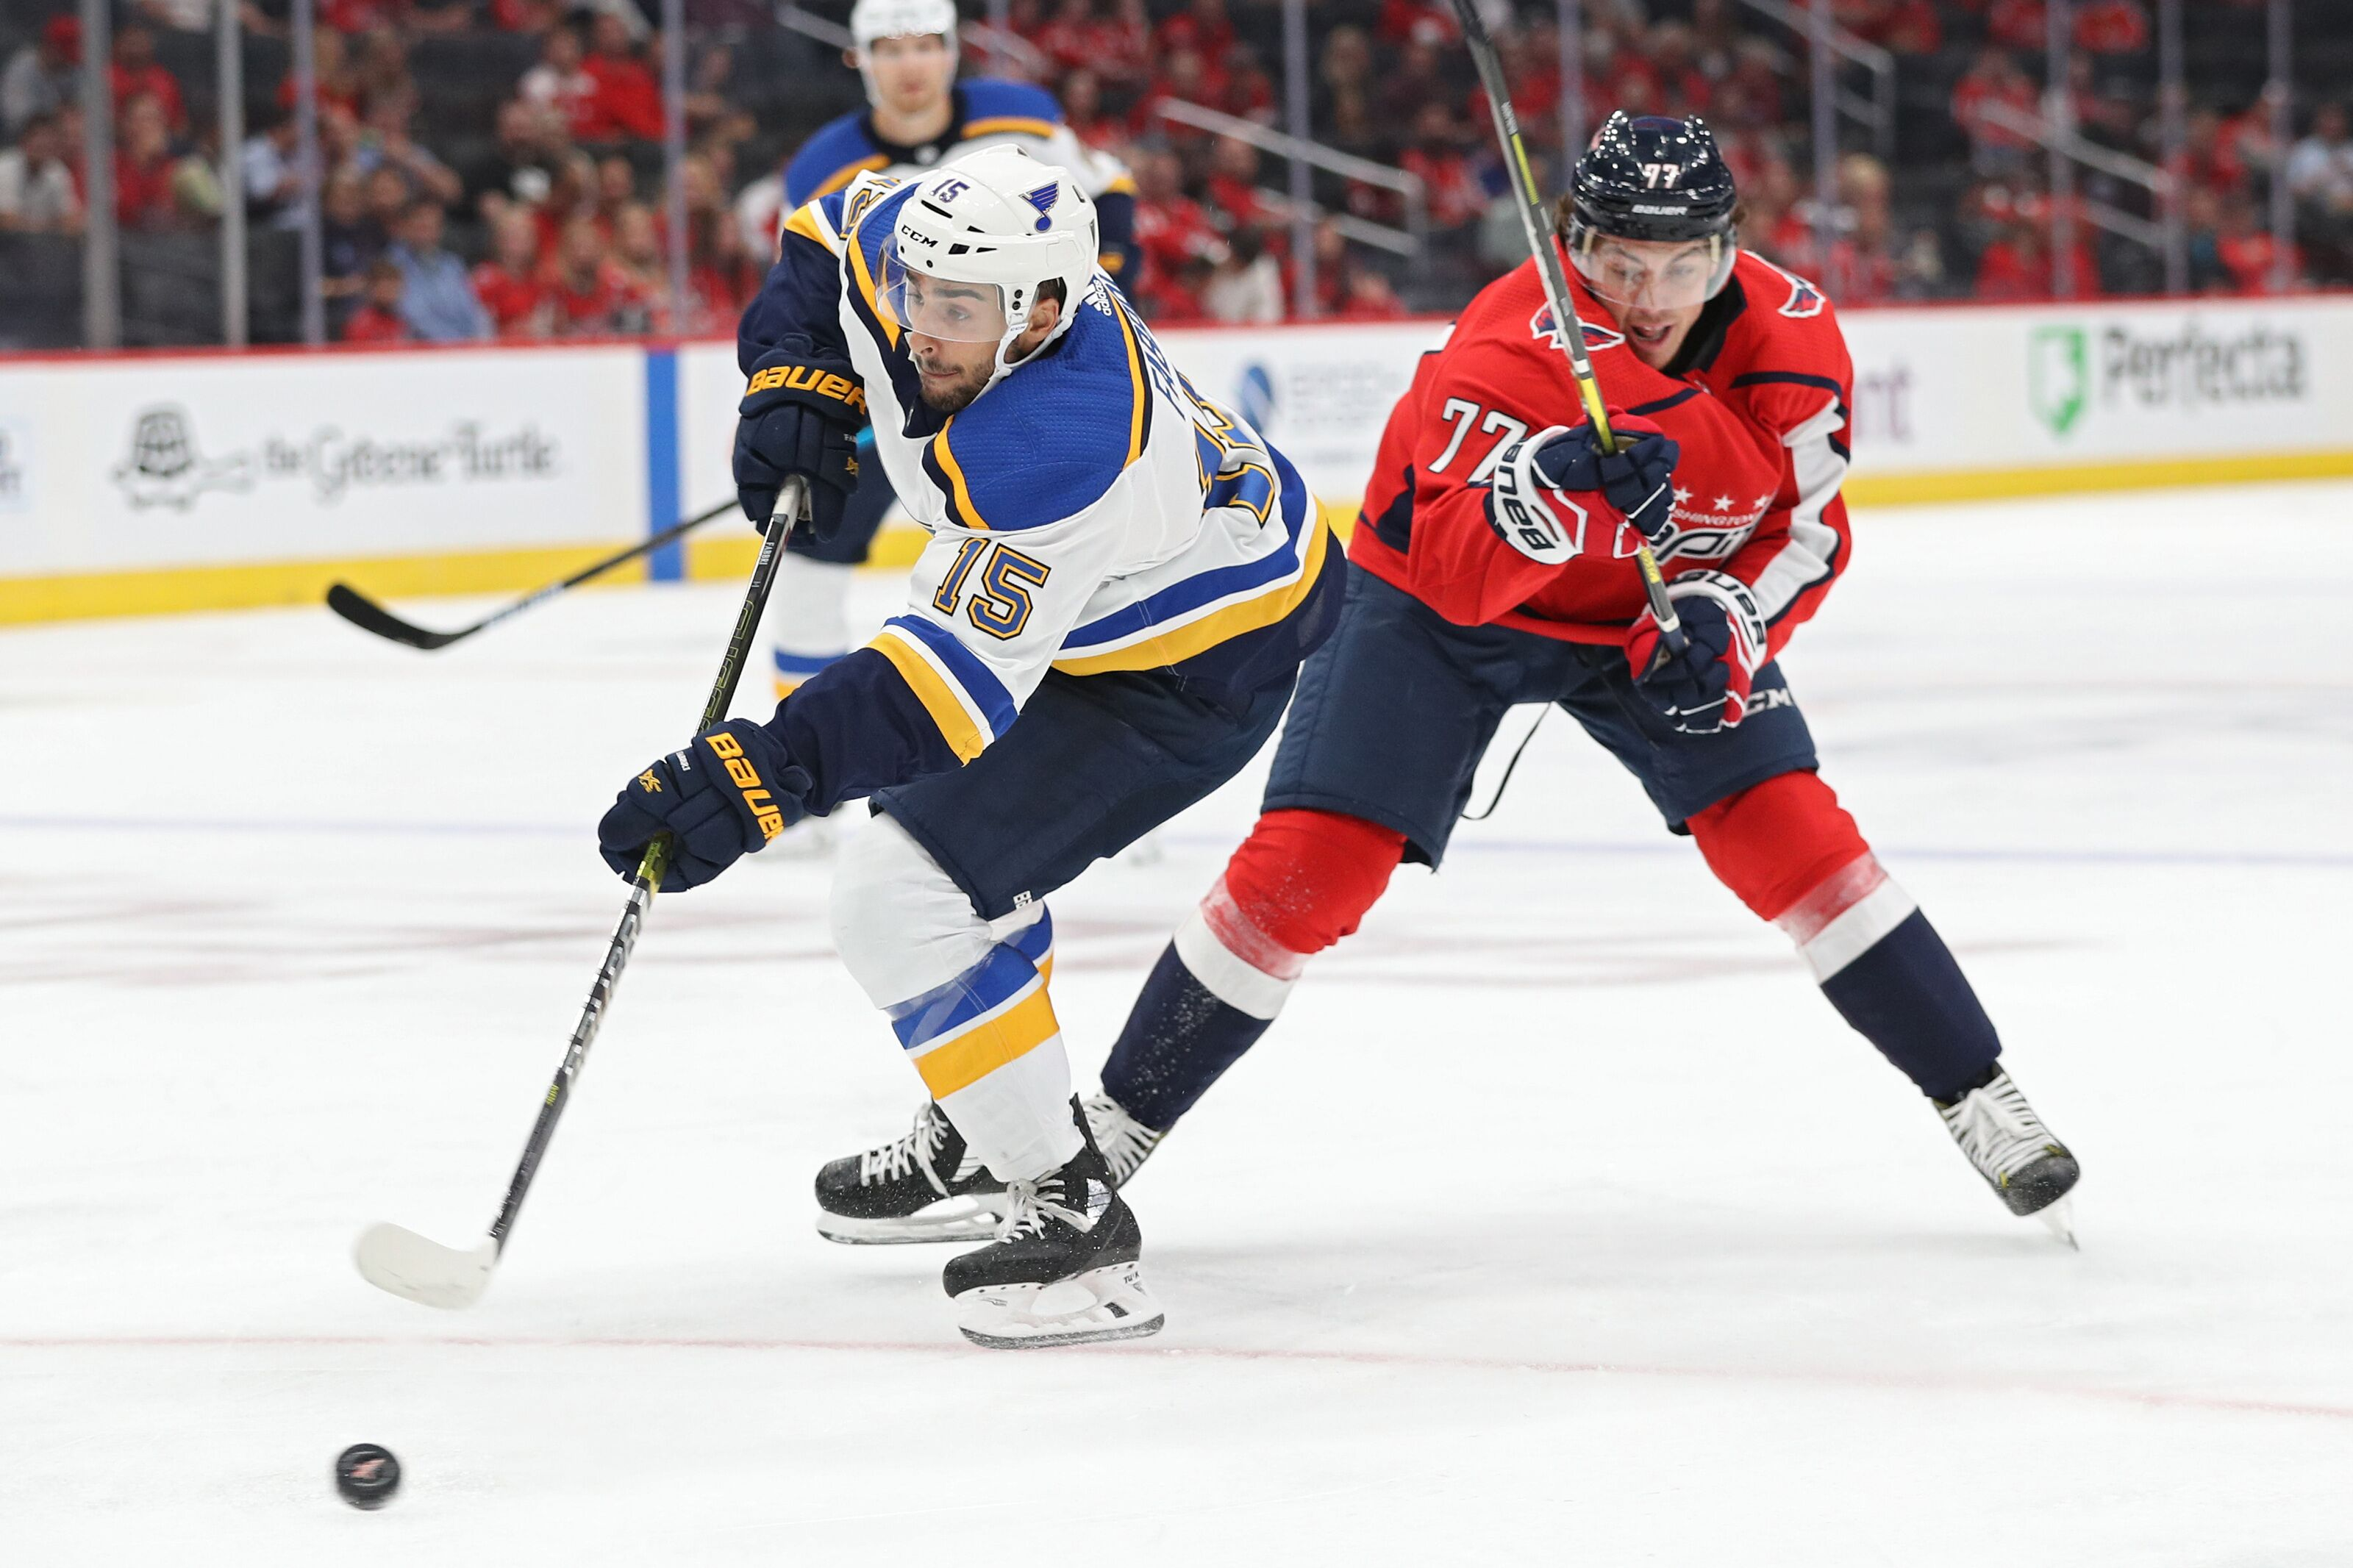 St. Louis Blues: Robby Fabbri's Appearance At Center Is Important